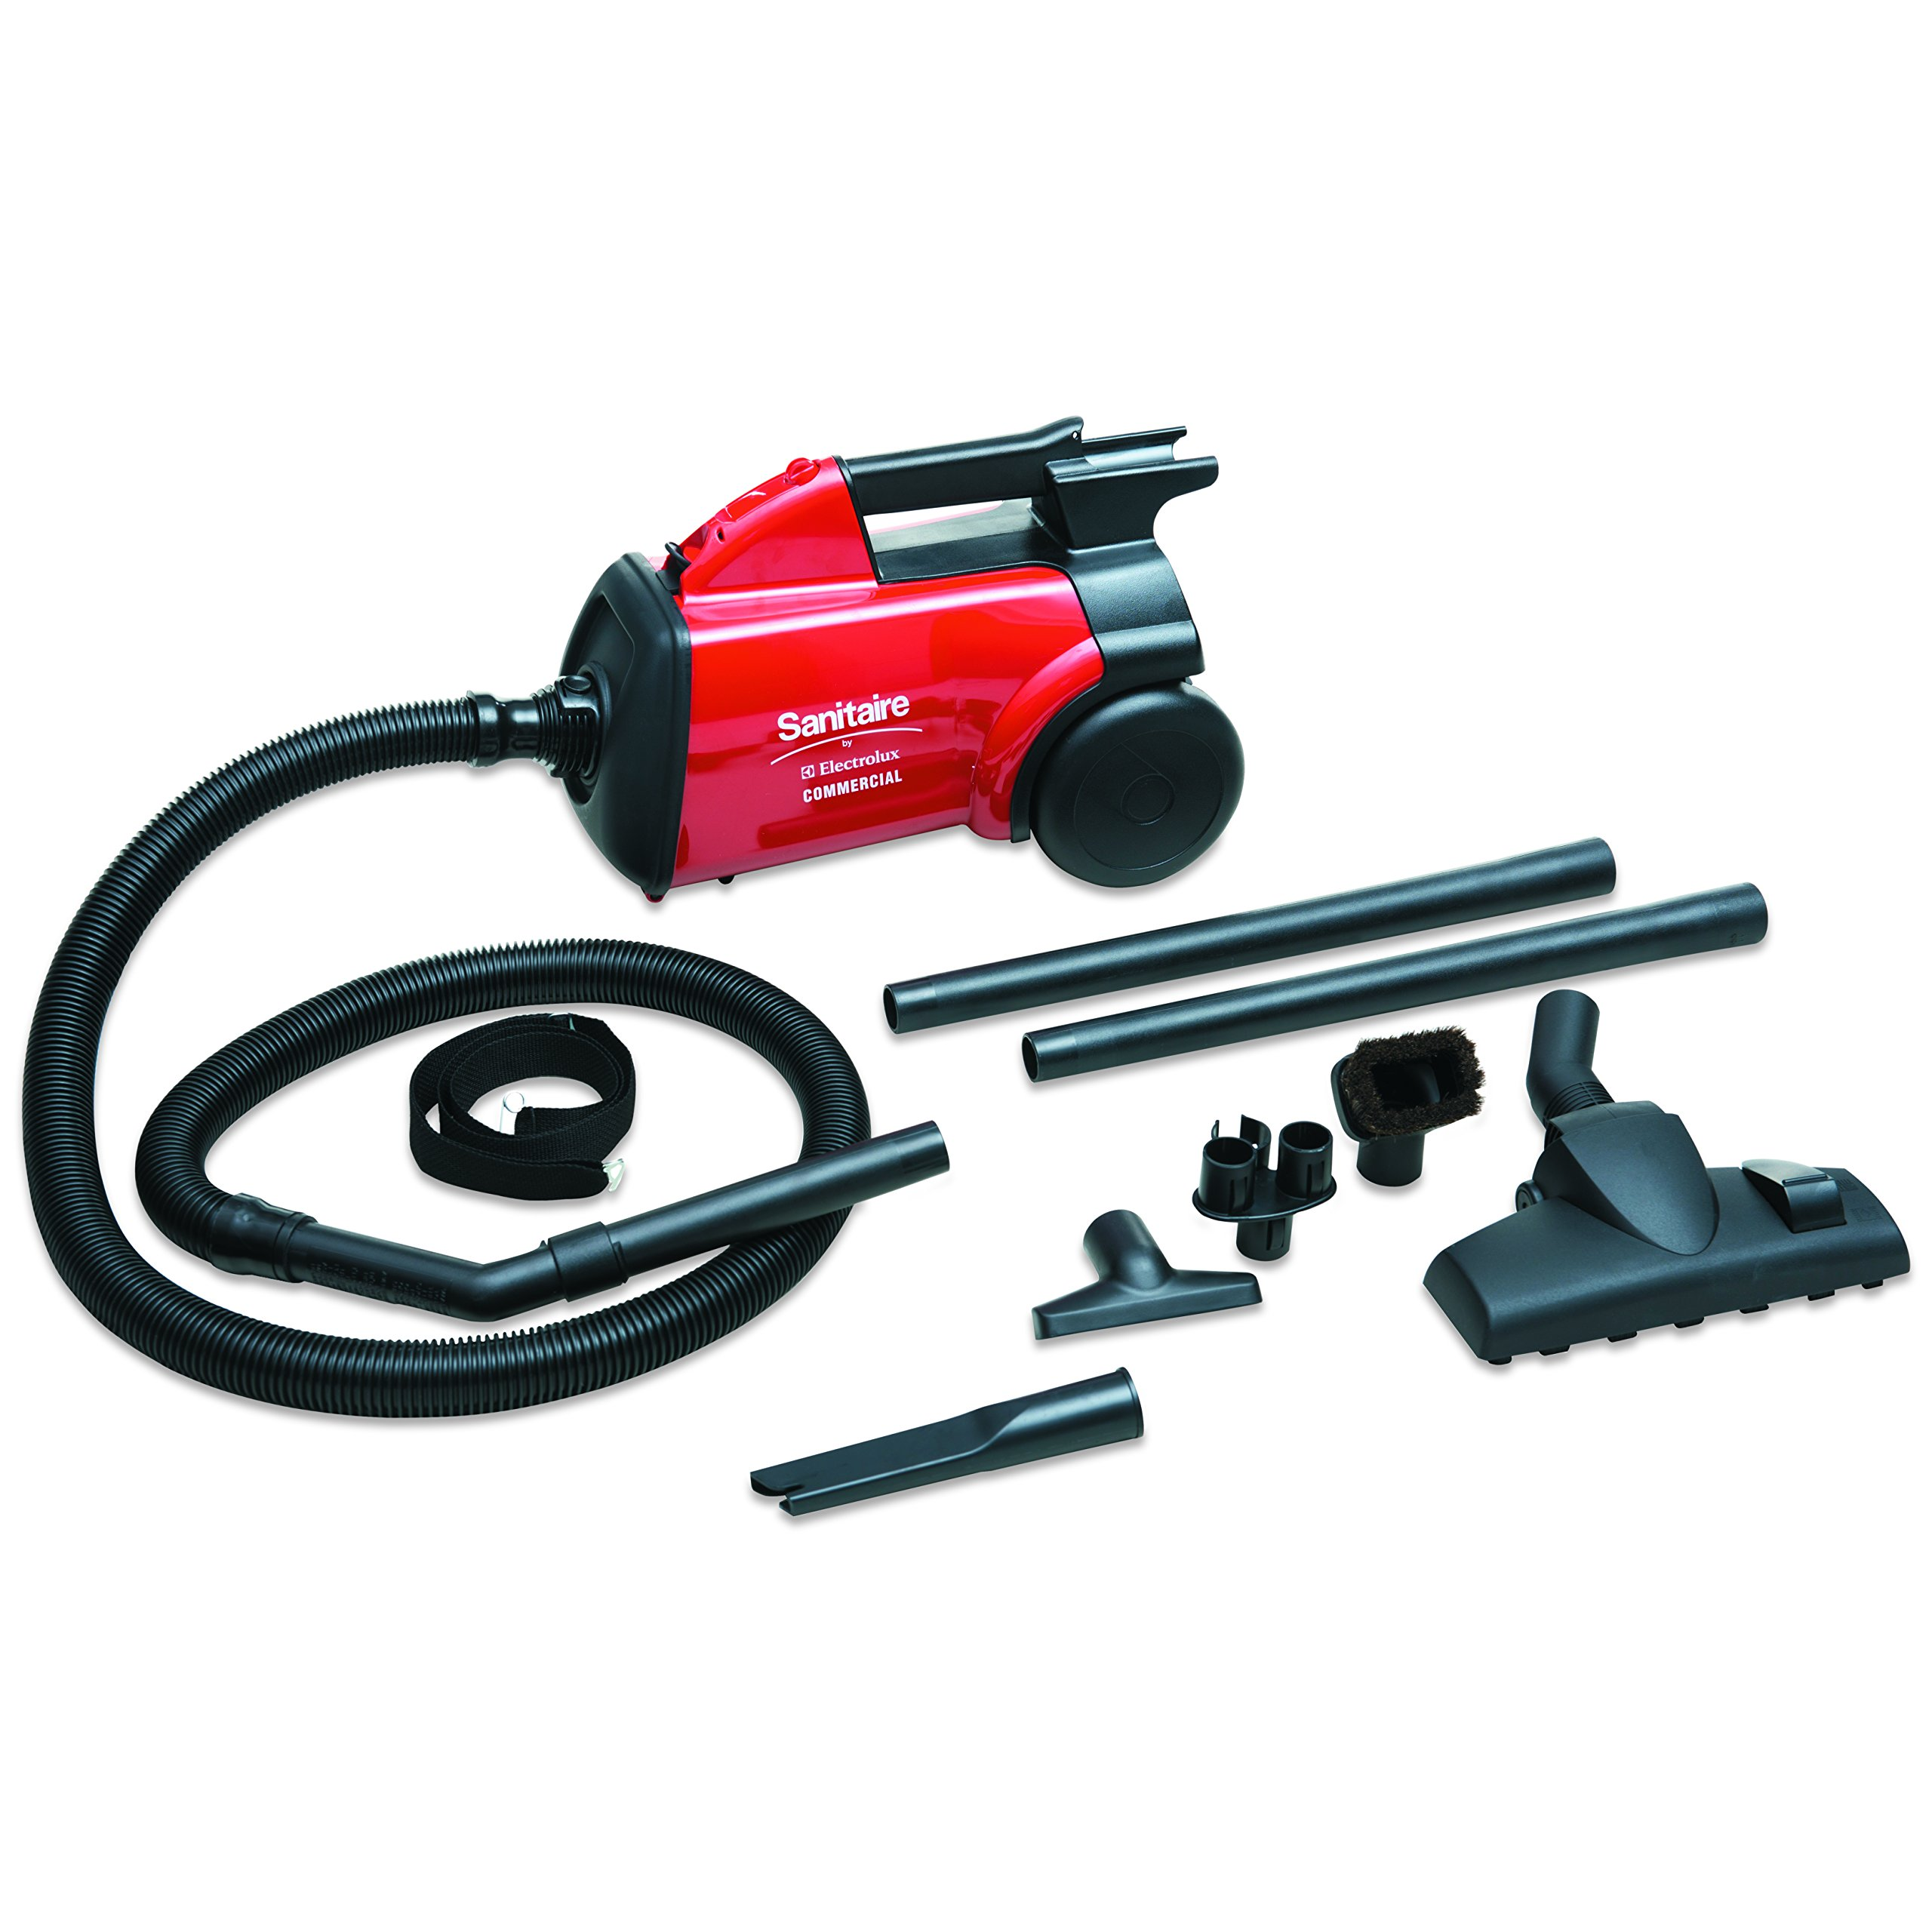 Sanitaire SC3683B EXTEND Canister Vacuum, 10 lb, Red by Sanitaire